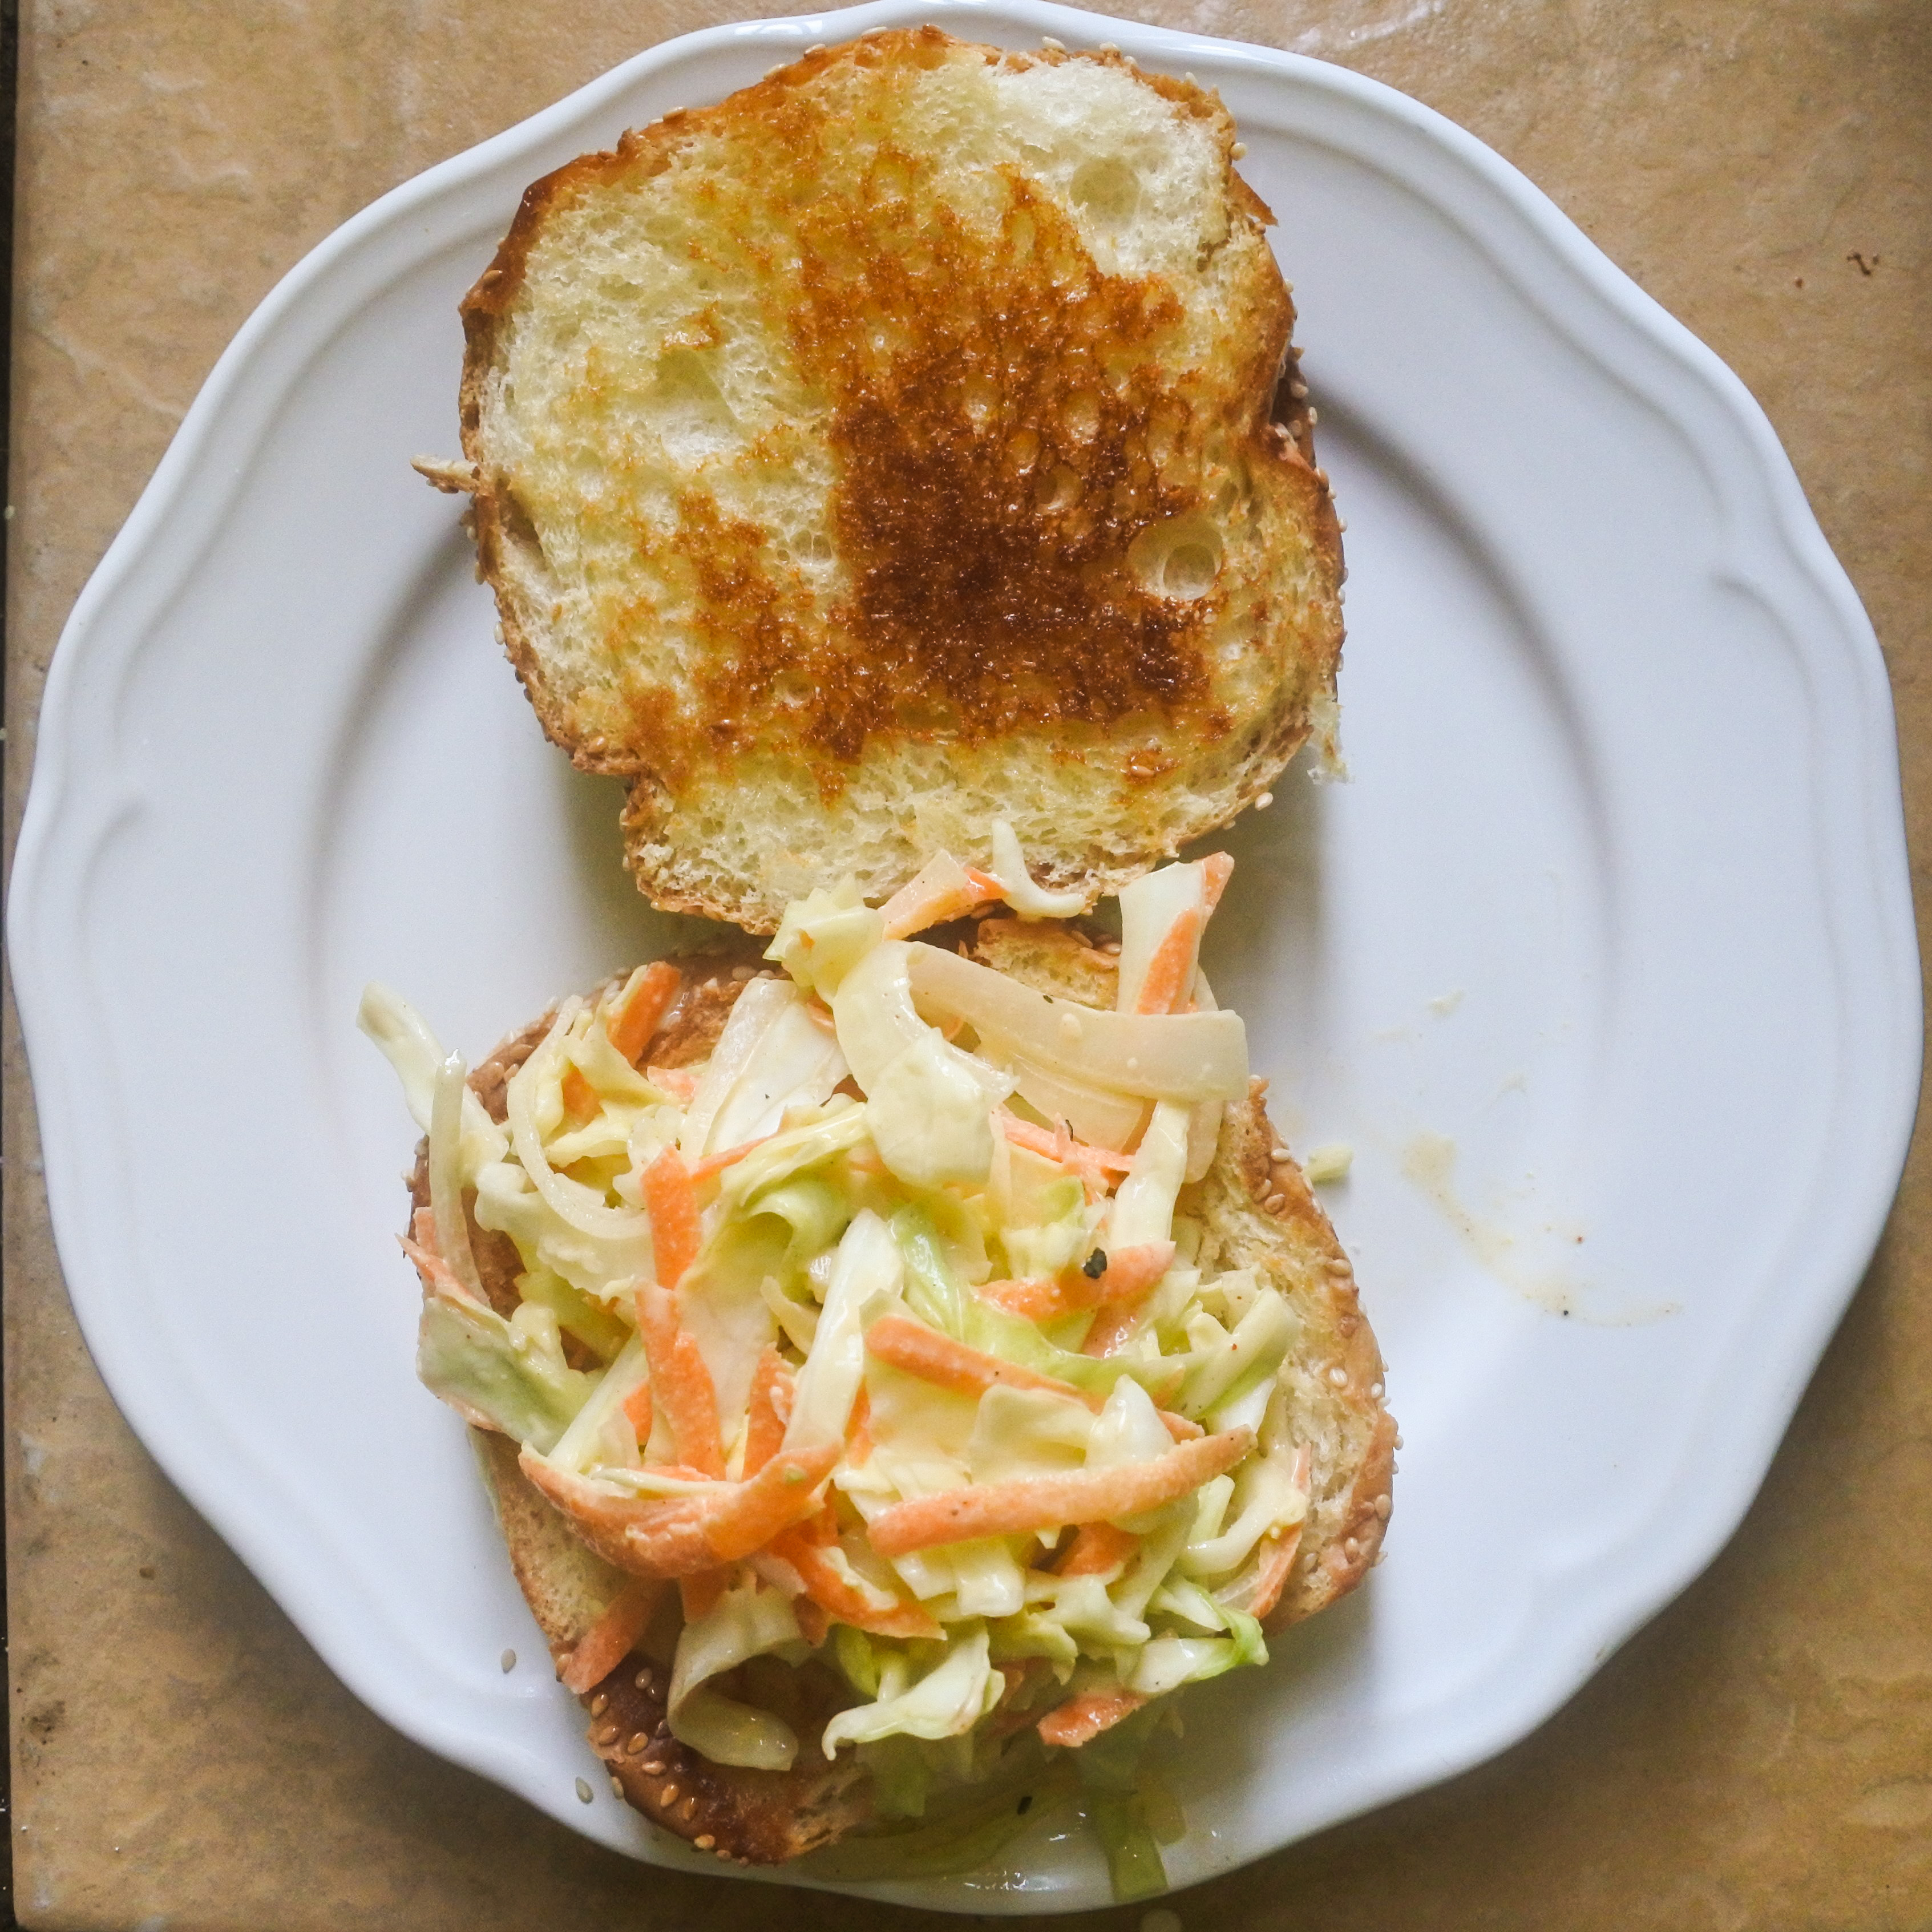 Place a spoonful of coleslaw on the bottom half